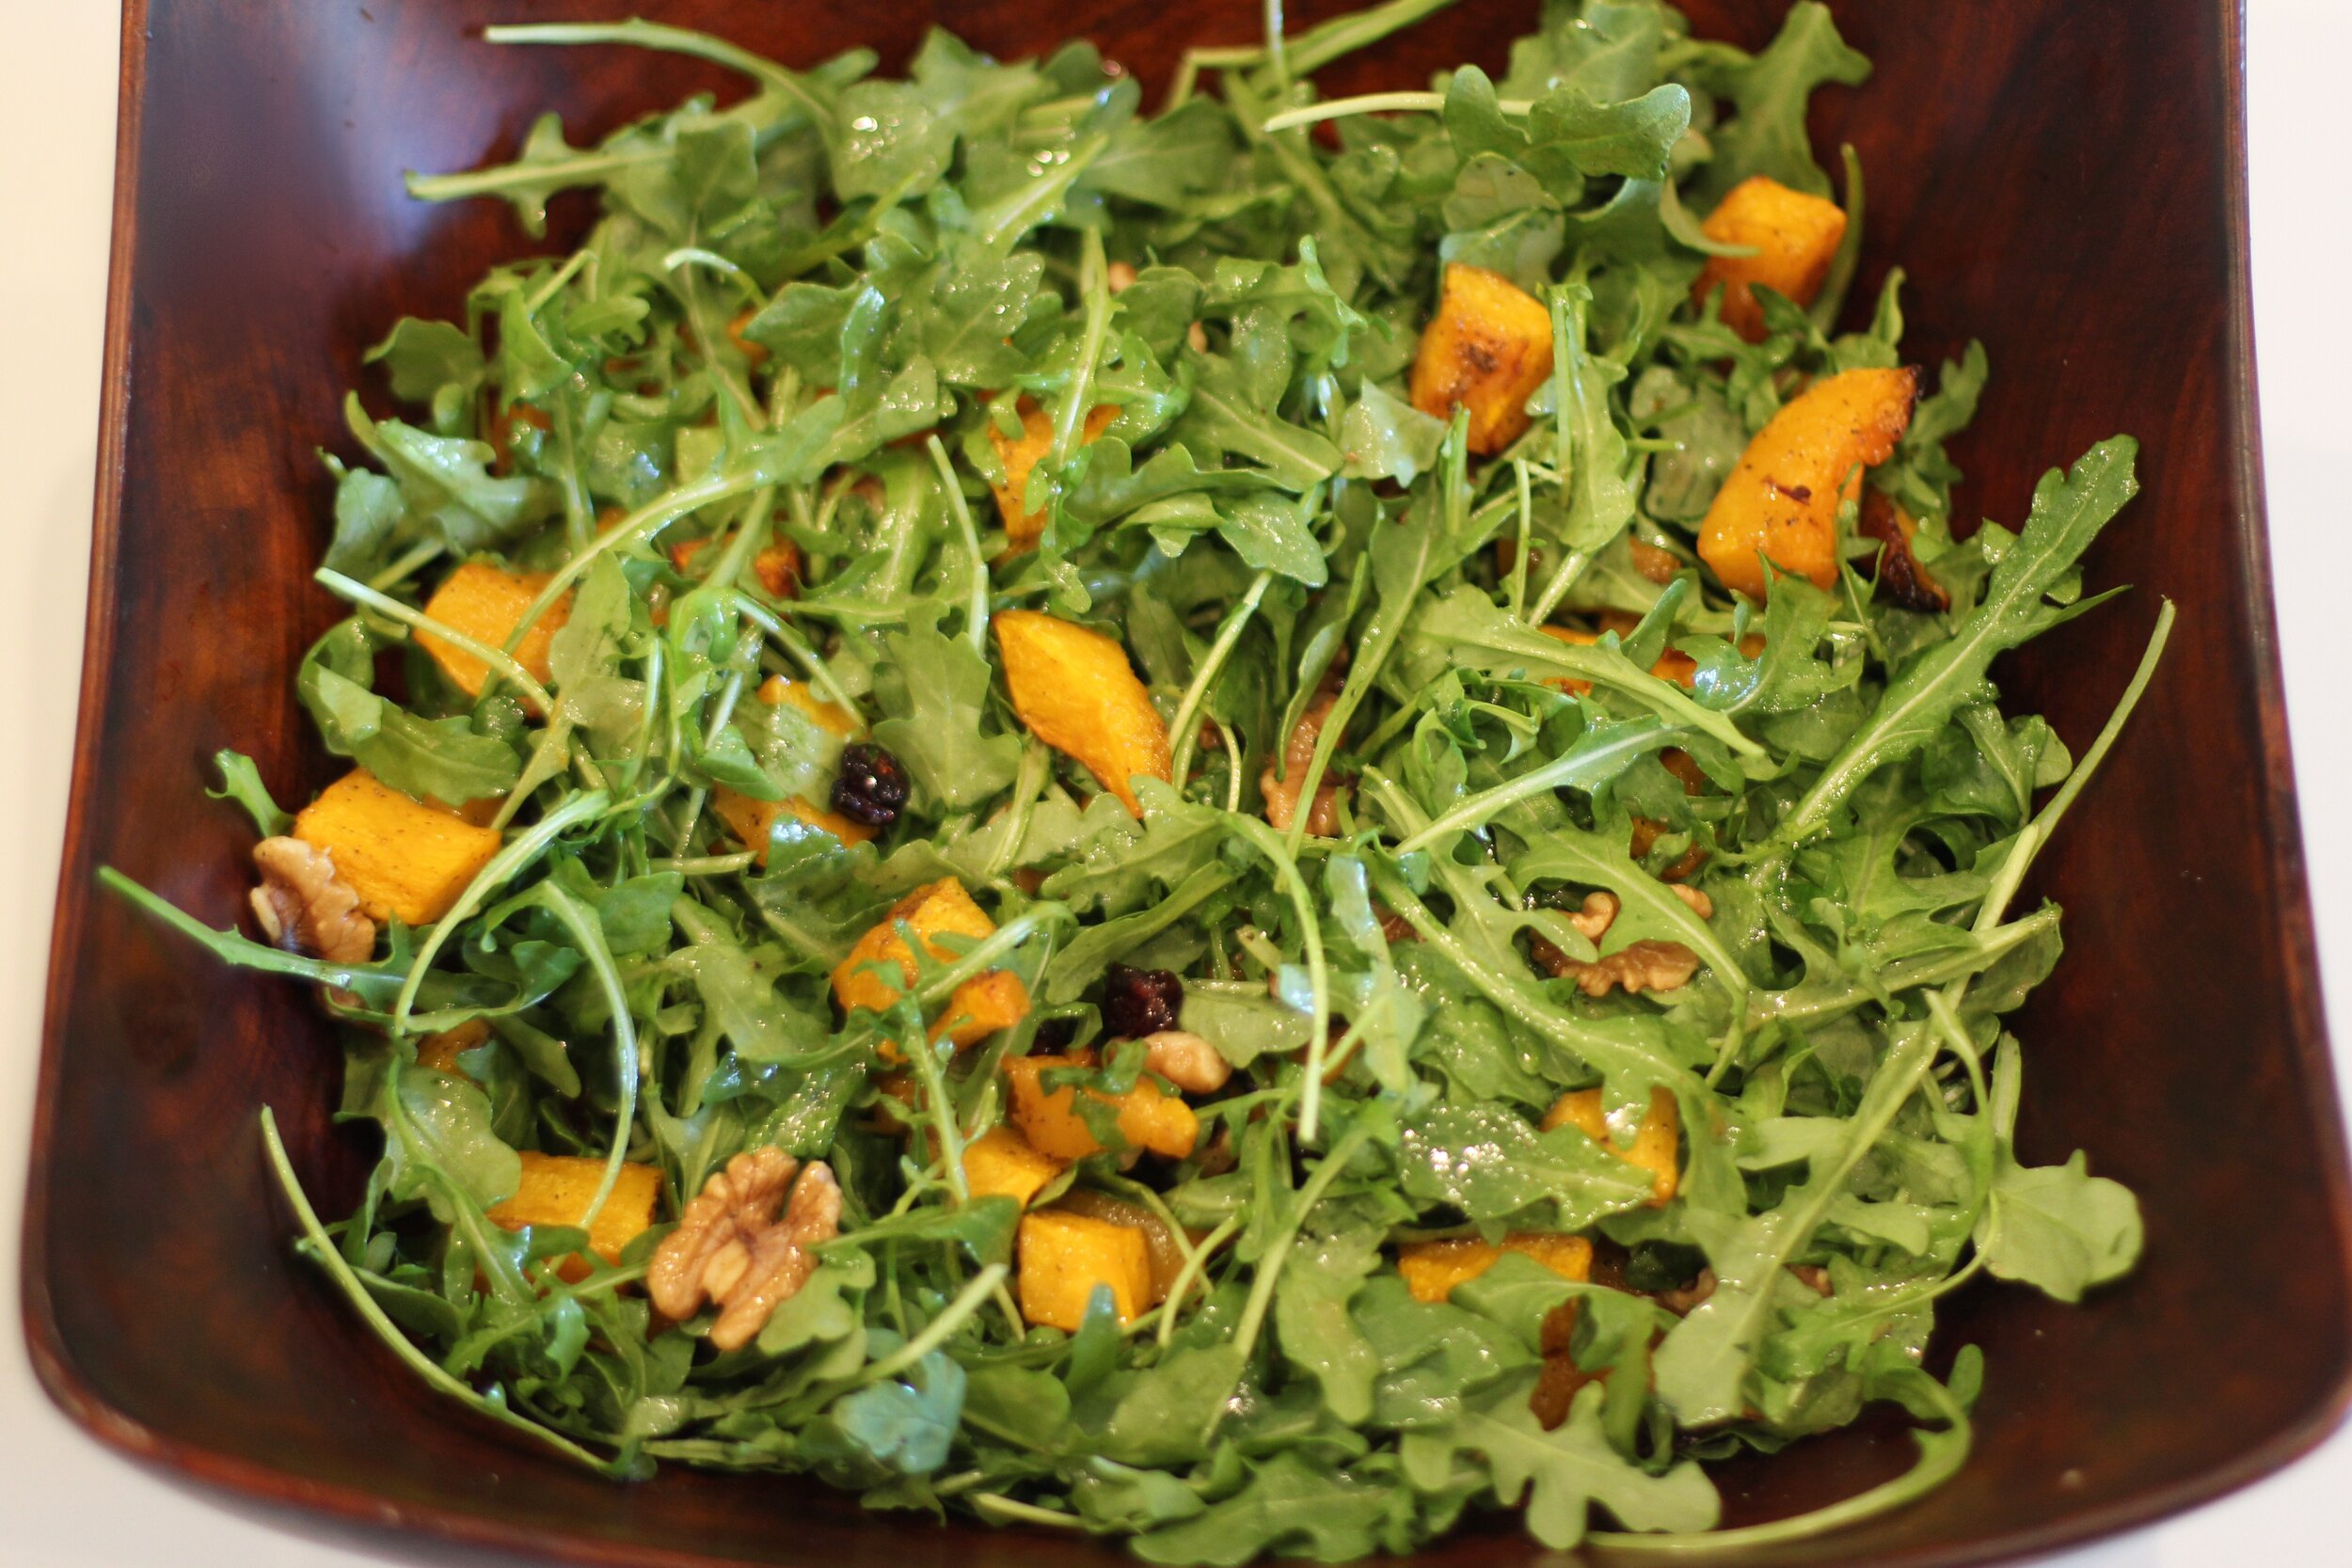 Talk about a multi tasking salad! This one is loaded with all things good and nutritious; from beta carotene, (among other important nutrients), packed butternut squash, to Omega 3 loaded walnuts. Arugula, which is a super food, is loaded with Vitamins A, C and folate, and provides 100% of your daily Vitamin K intake, which is important for blood clotting.